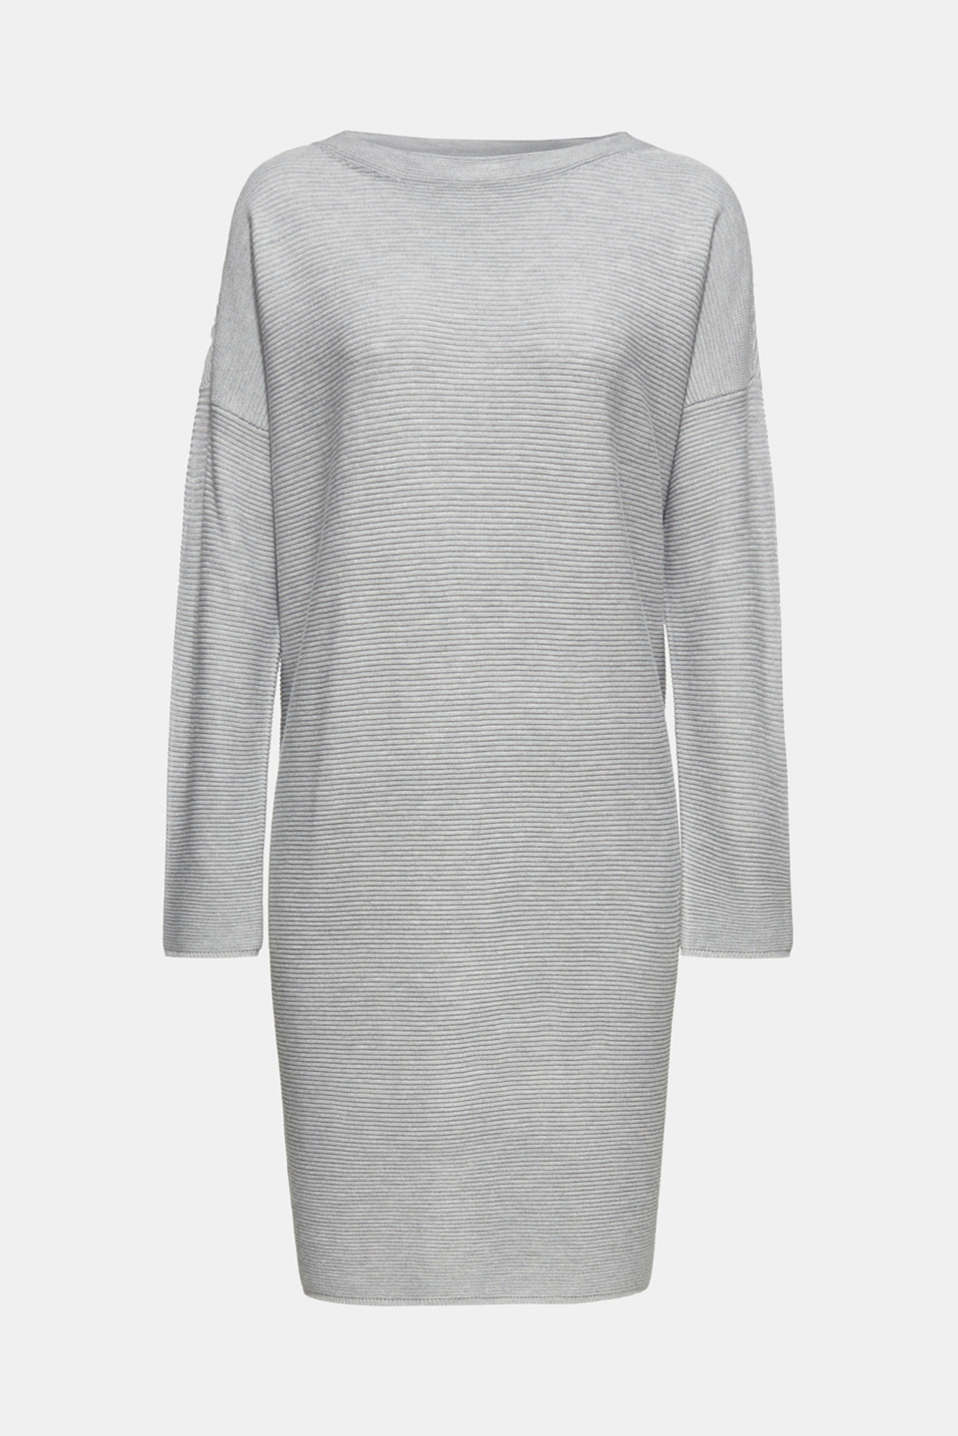 Knit dress with a ribbed texture, MEDIUM GREY 5, detail image number 6